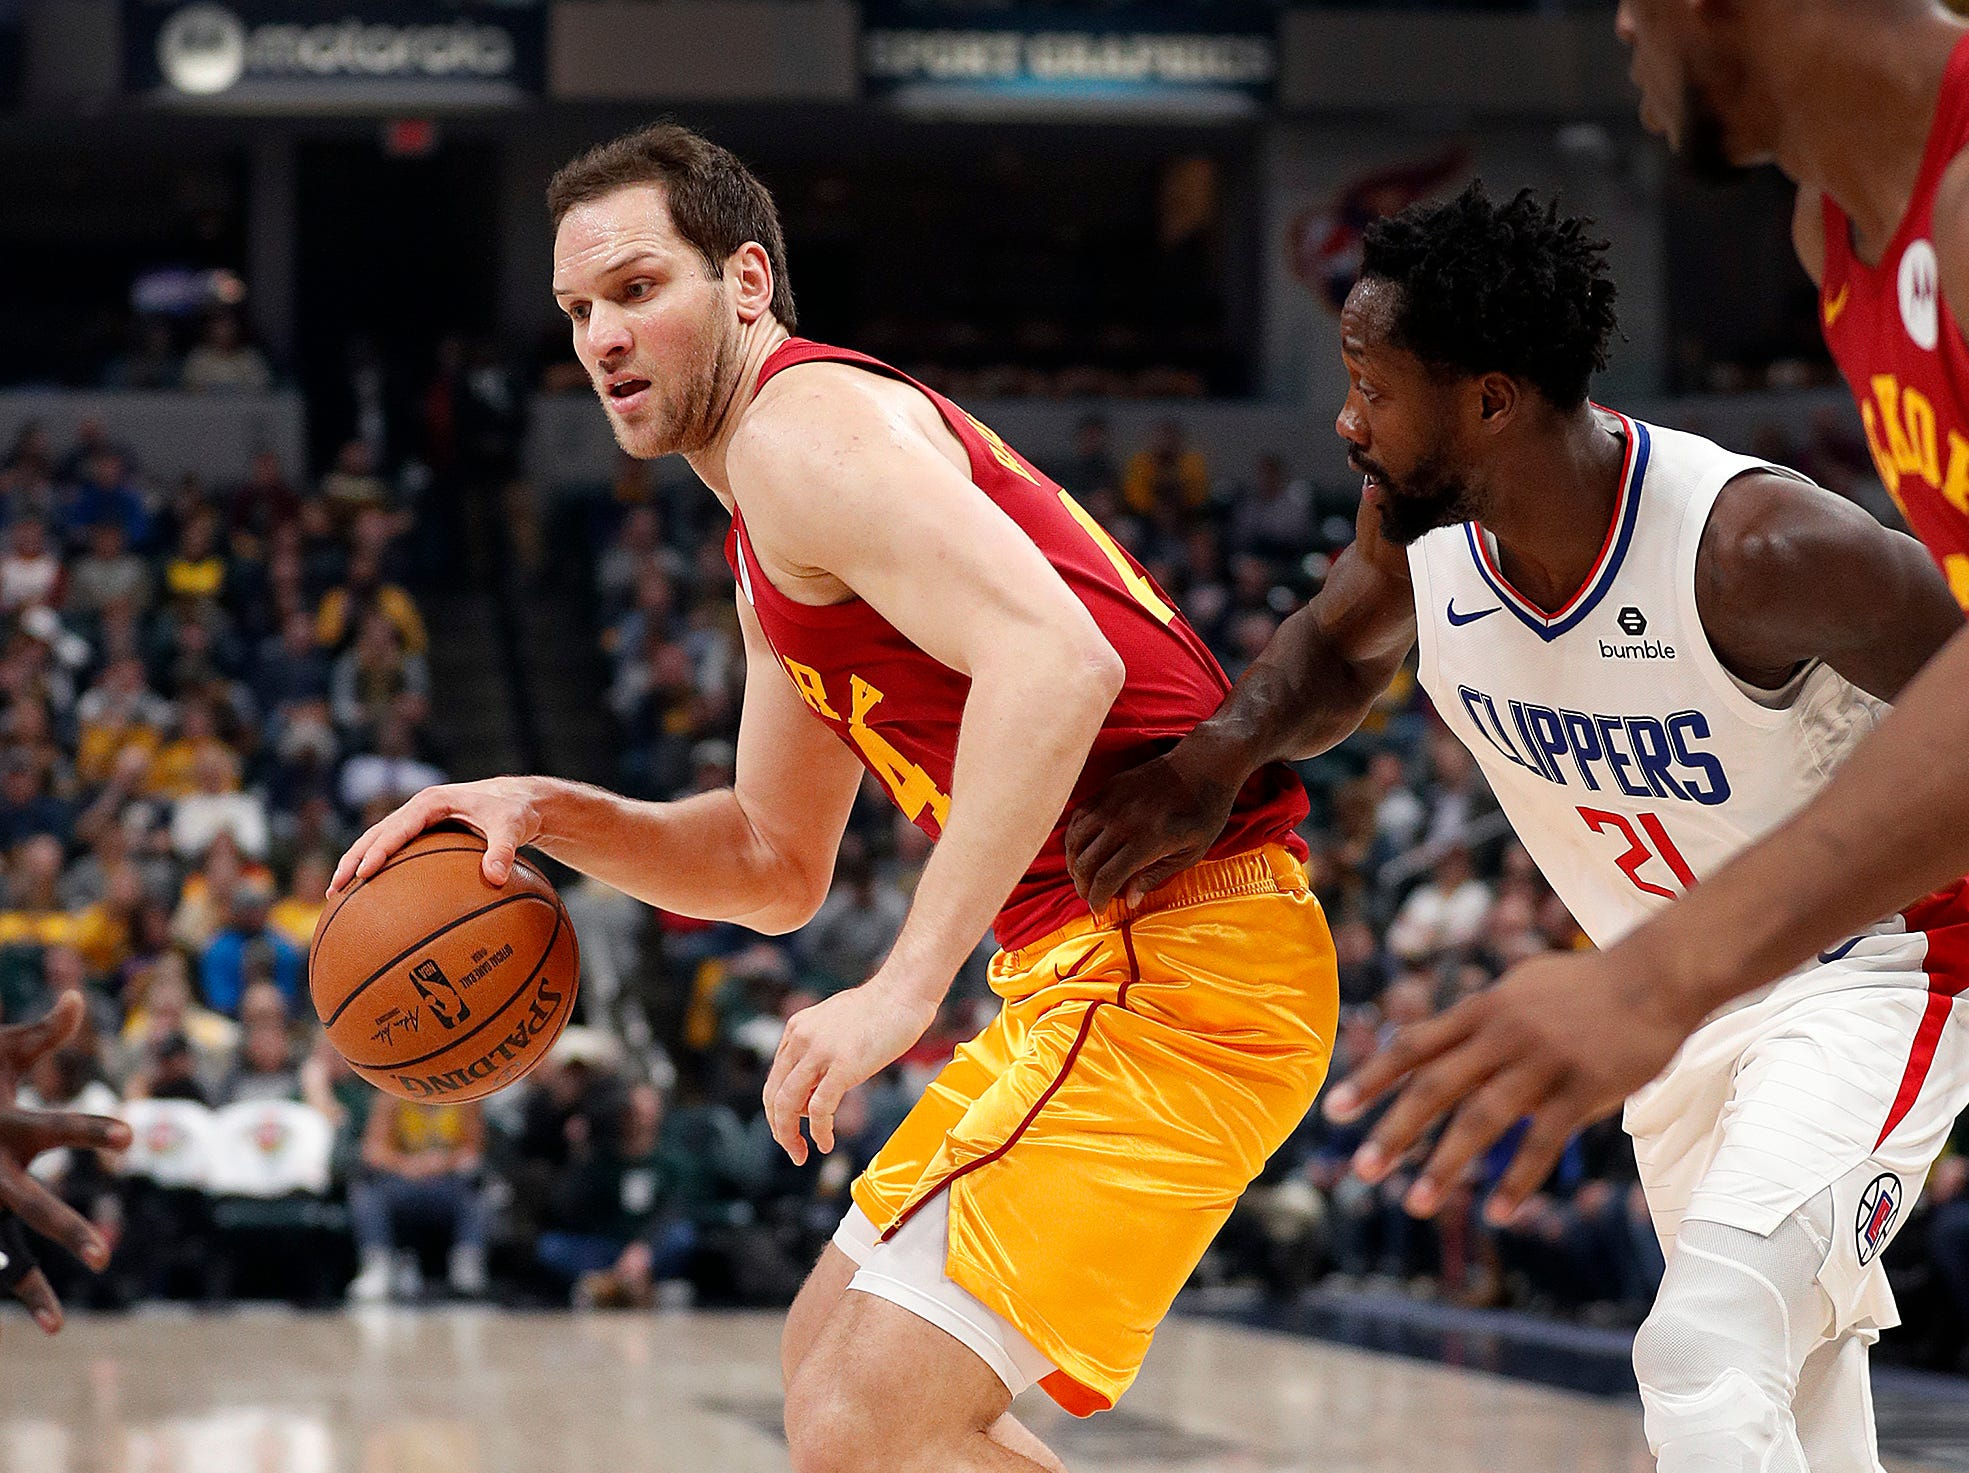 Indiana Pacers forward Bojan Bogdanovic (44) dribbles around LA Clippers guard Patrick Beverley (21) in the first half of their game at Bankers Life Fieldhouse on Thursday, Feb. 7, 2019.